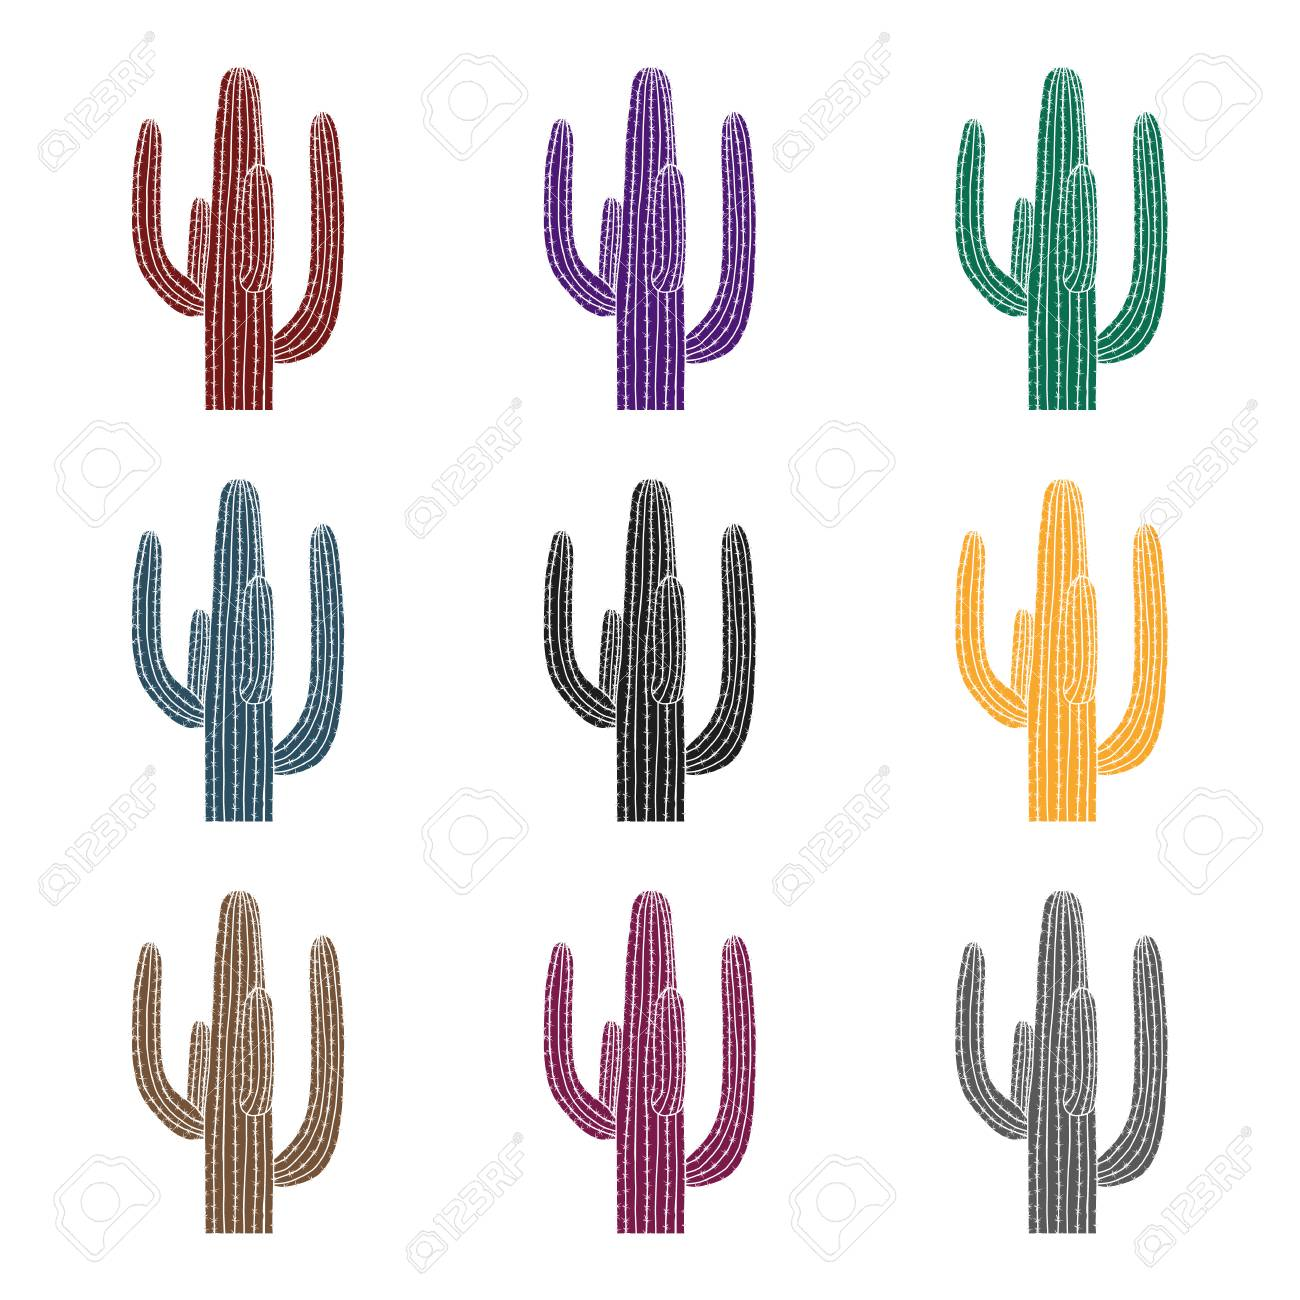 Mexican Cactus Clipart Black And White